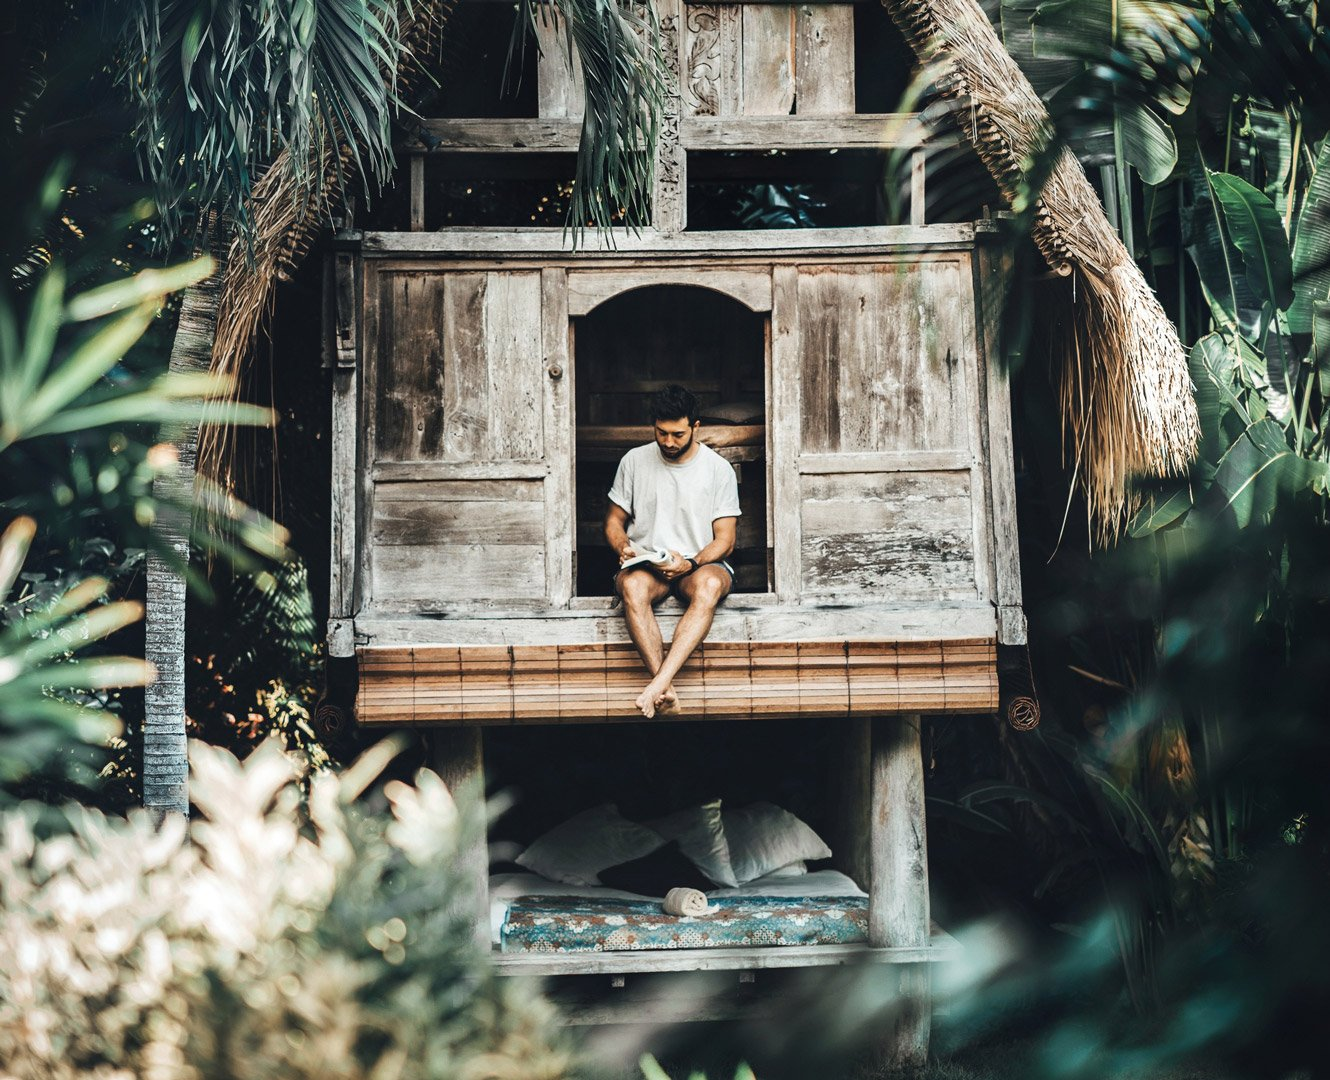 Cozy reading treehouse at Own Villa eco design wooden hut surrounded by palms and green Bali nature